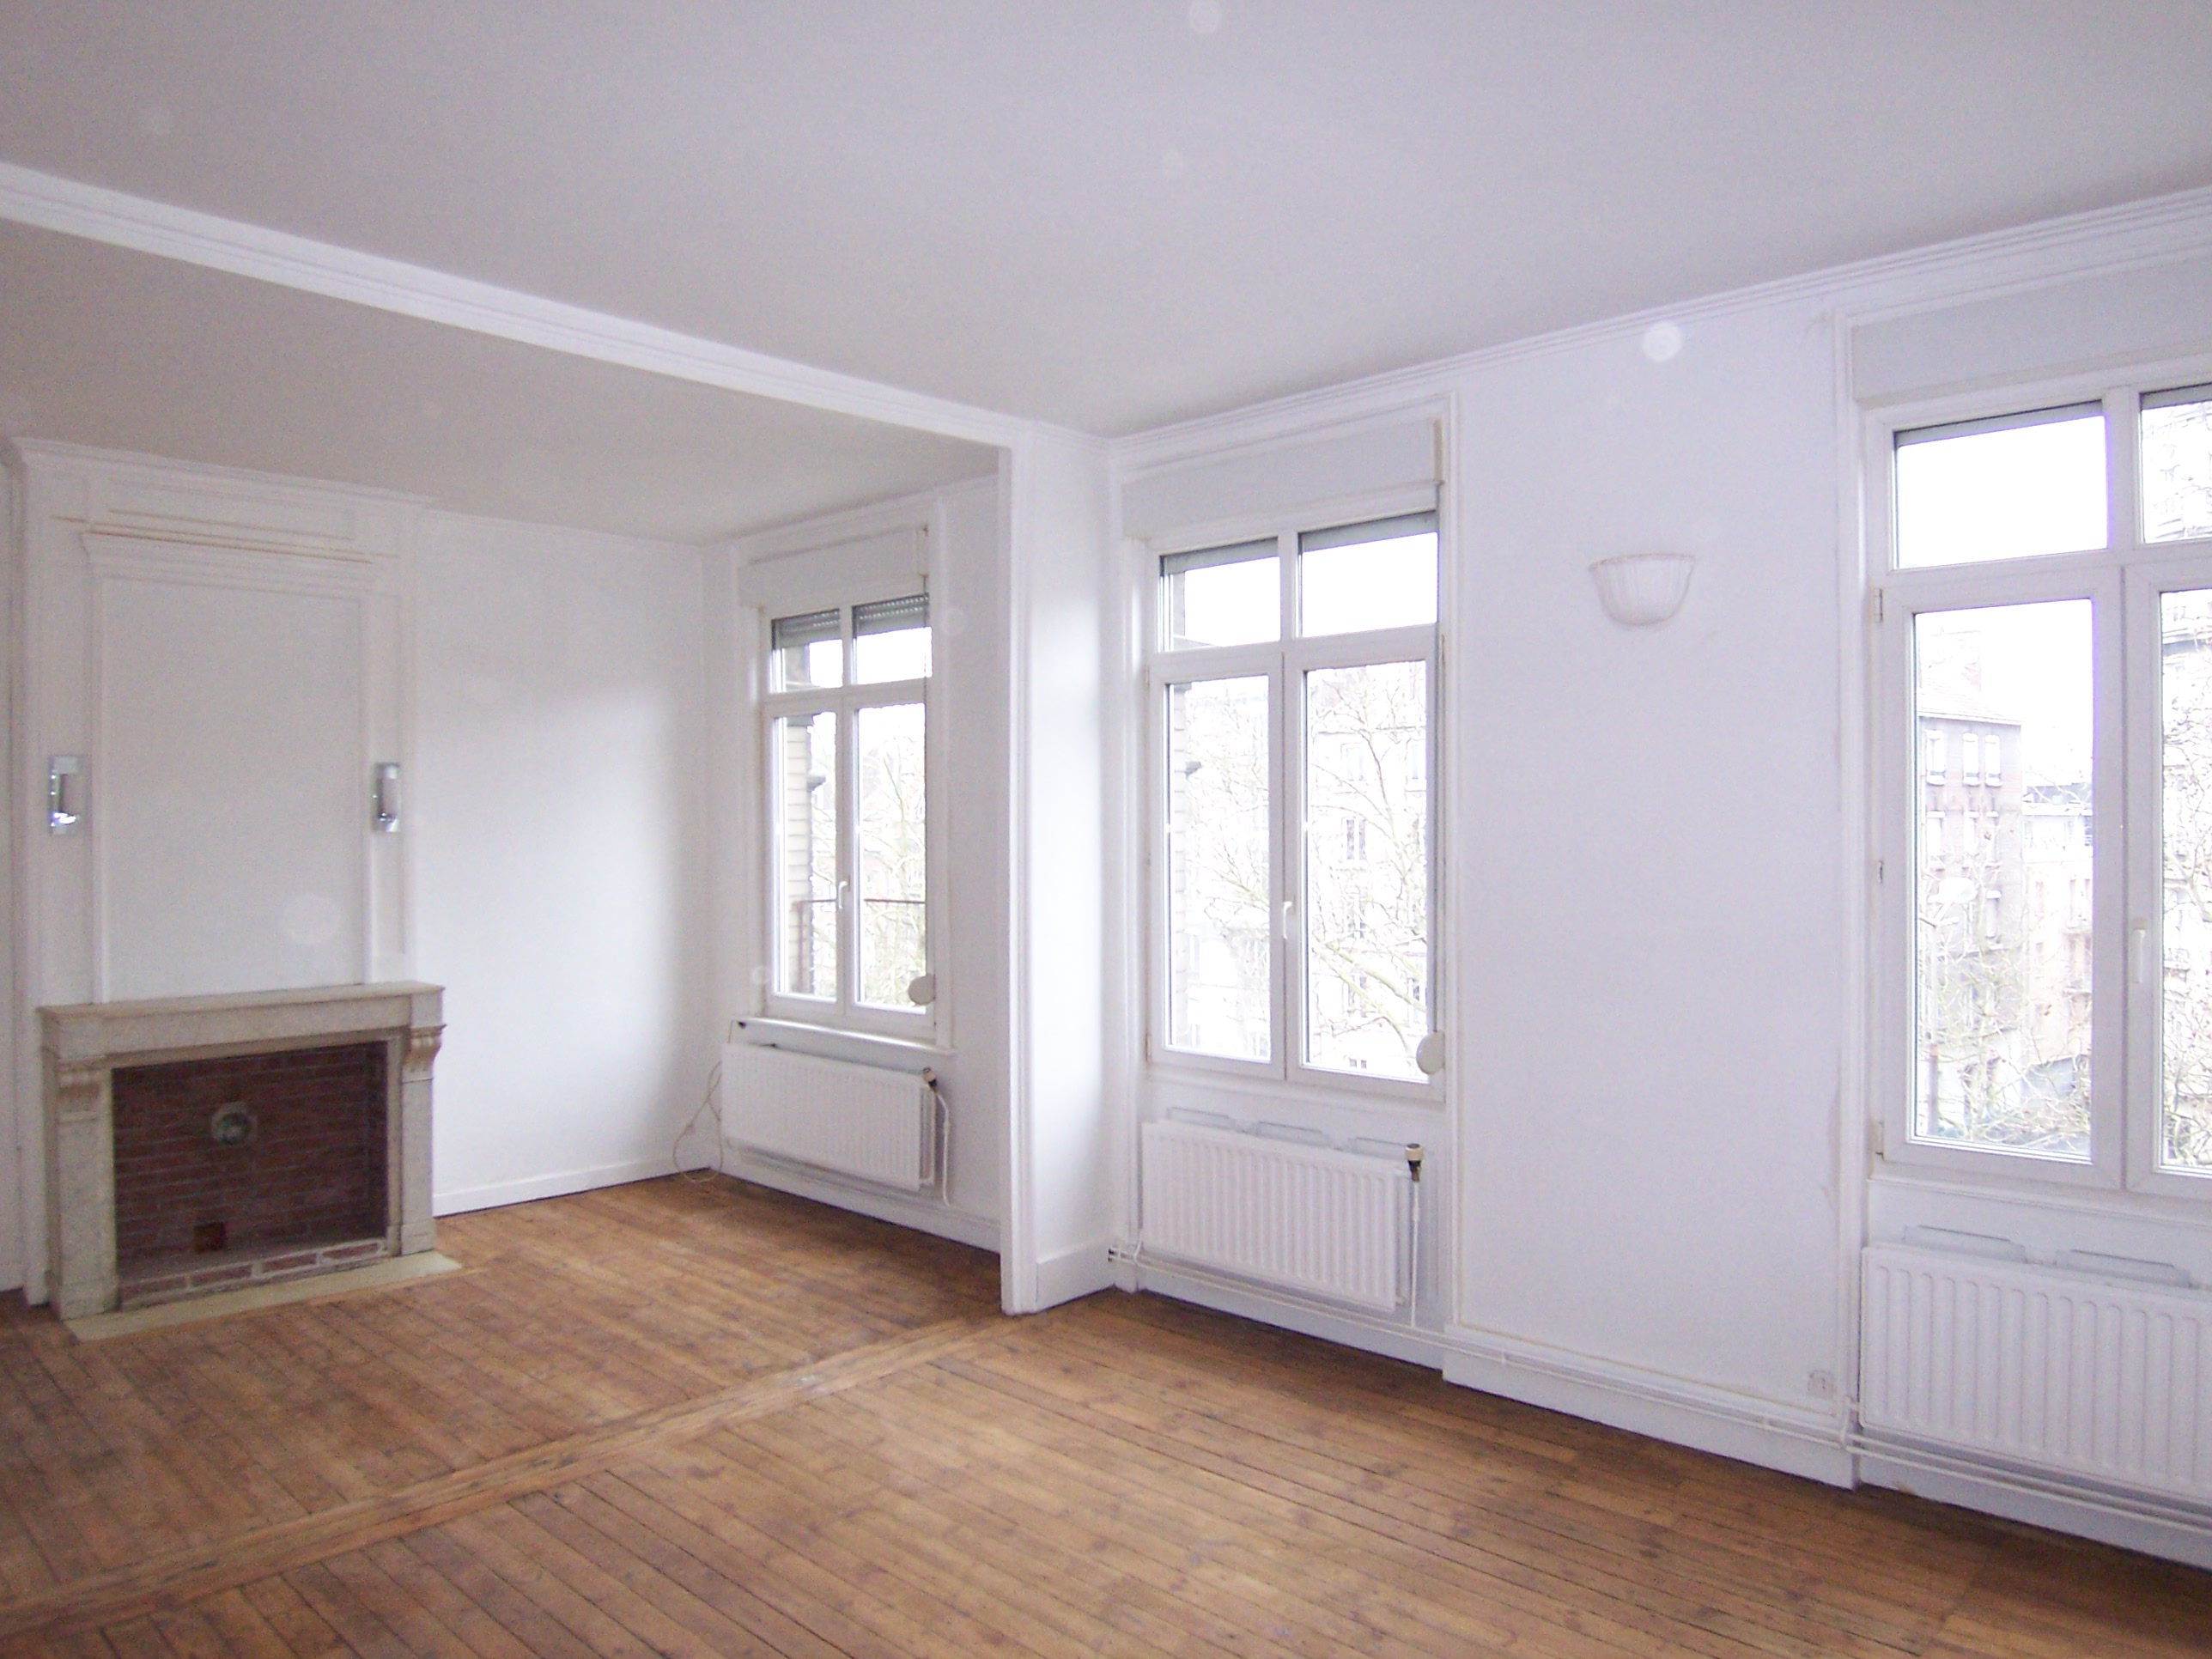 Appartement 3 chambres   louer